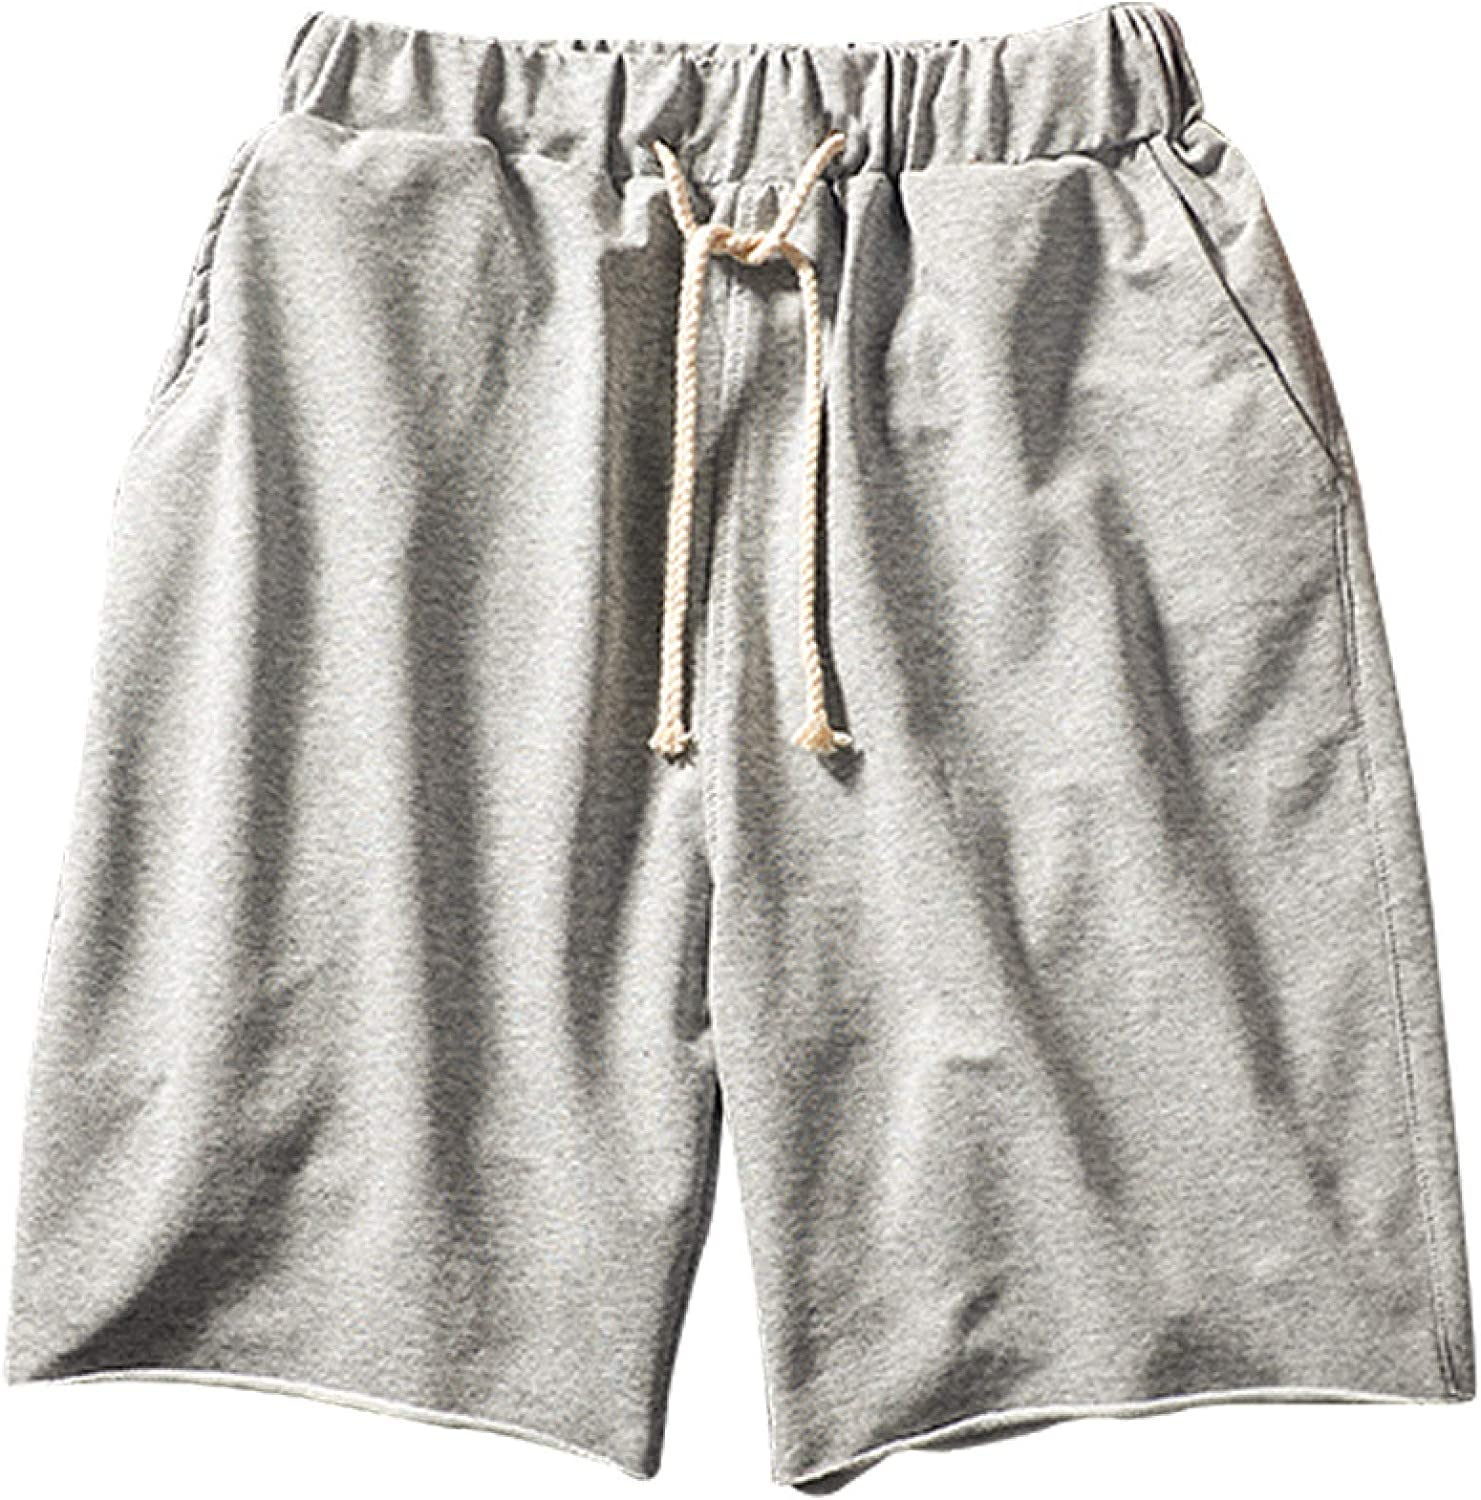 Men's European and American Trend Shorts Loose Max 85% OFF Comfortabl Summer Limited price sale